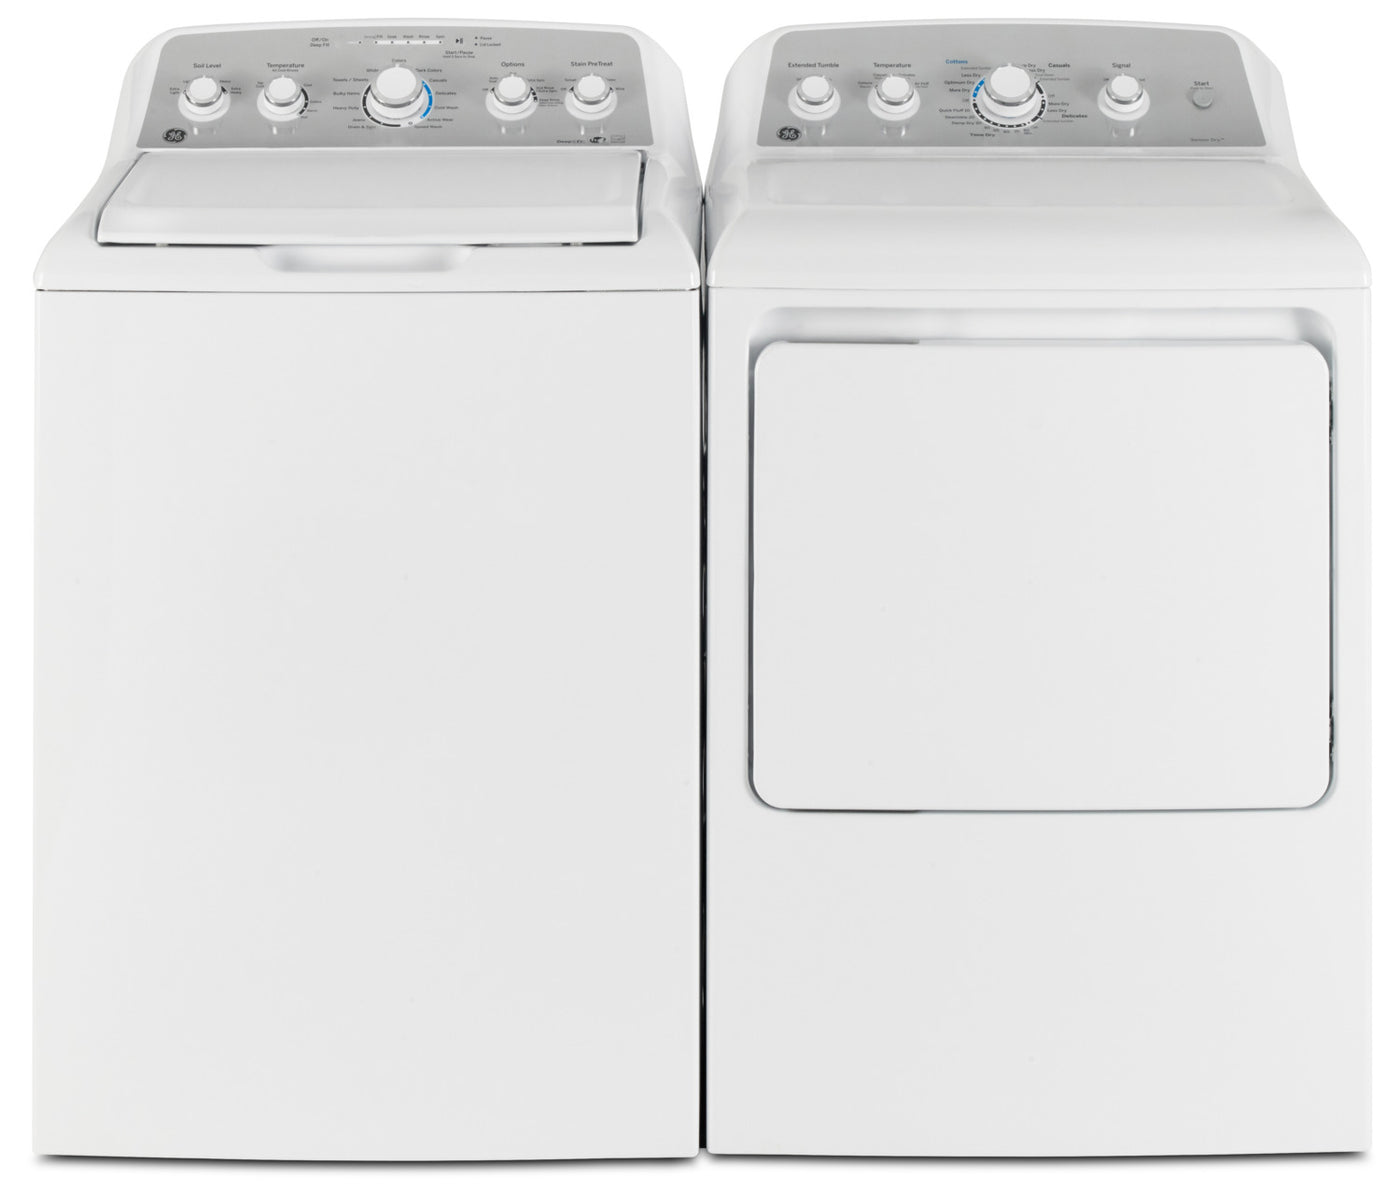 GE 4 9 Cu  Ft  Capacity Top-Load Washer with Stainless Steel Drum and 7 2  Cu  Ft  Electric Dryer